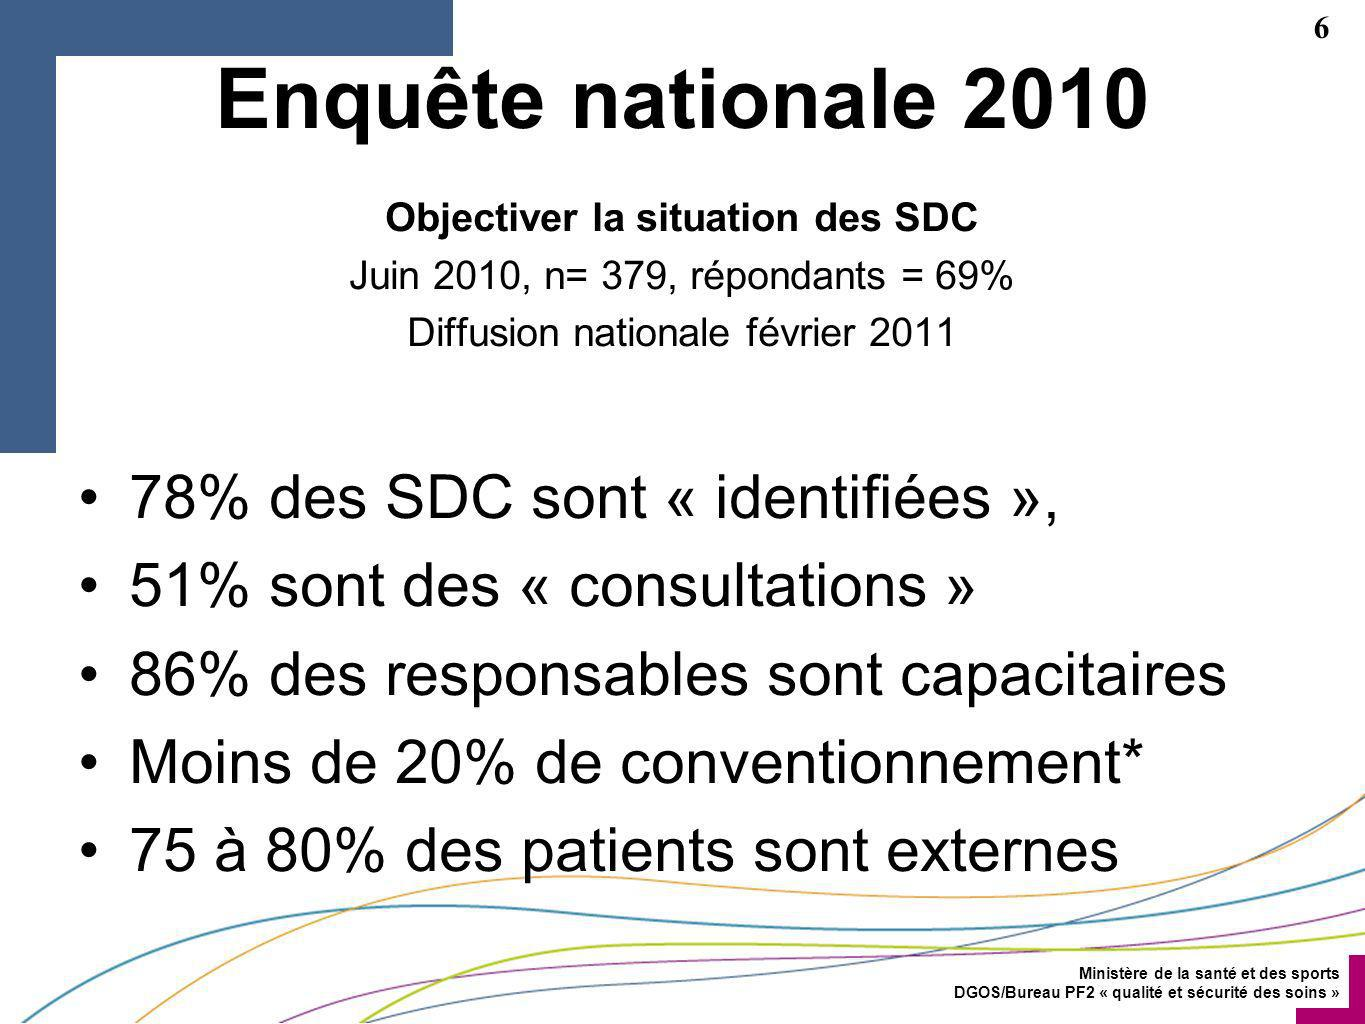 Objectiver la situation des SDC